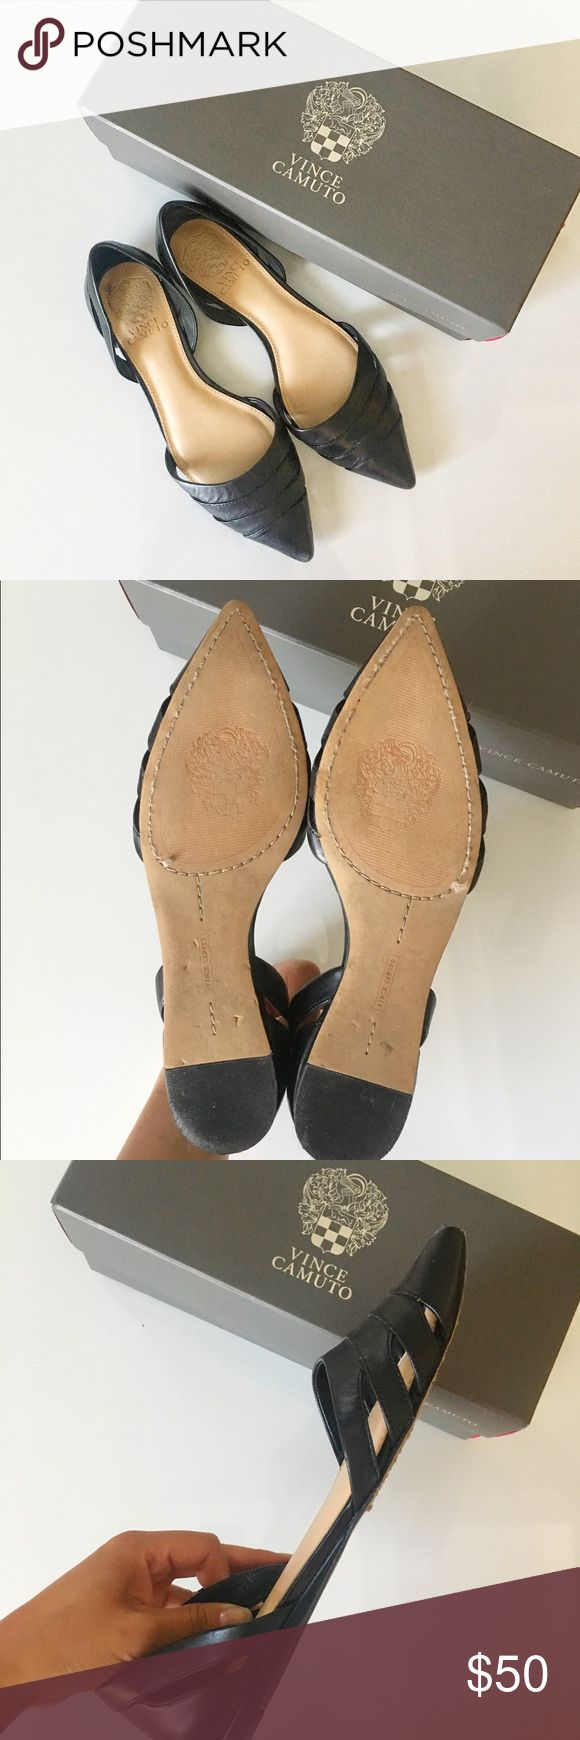 Vince Camuto: Halette Style Flats Preloved flats, leather, see pictures, listed 6/20. Comes with box. Normal wear and tear on the heel edge. Vince camuto - Halette style. Vince Camuto Shoes Flats & Loafers